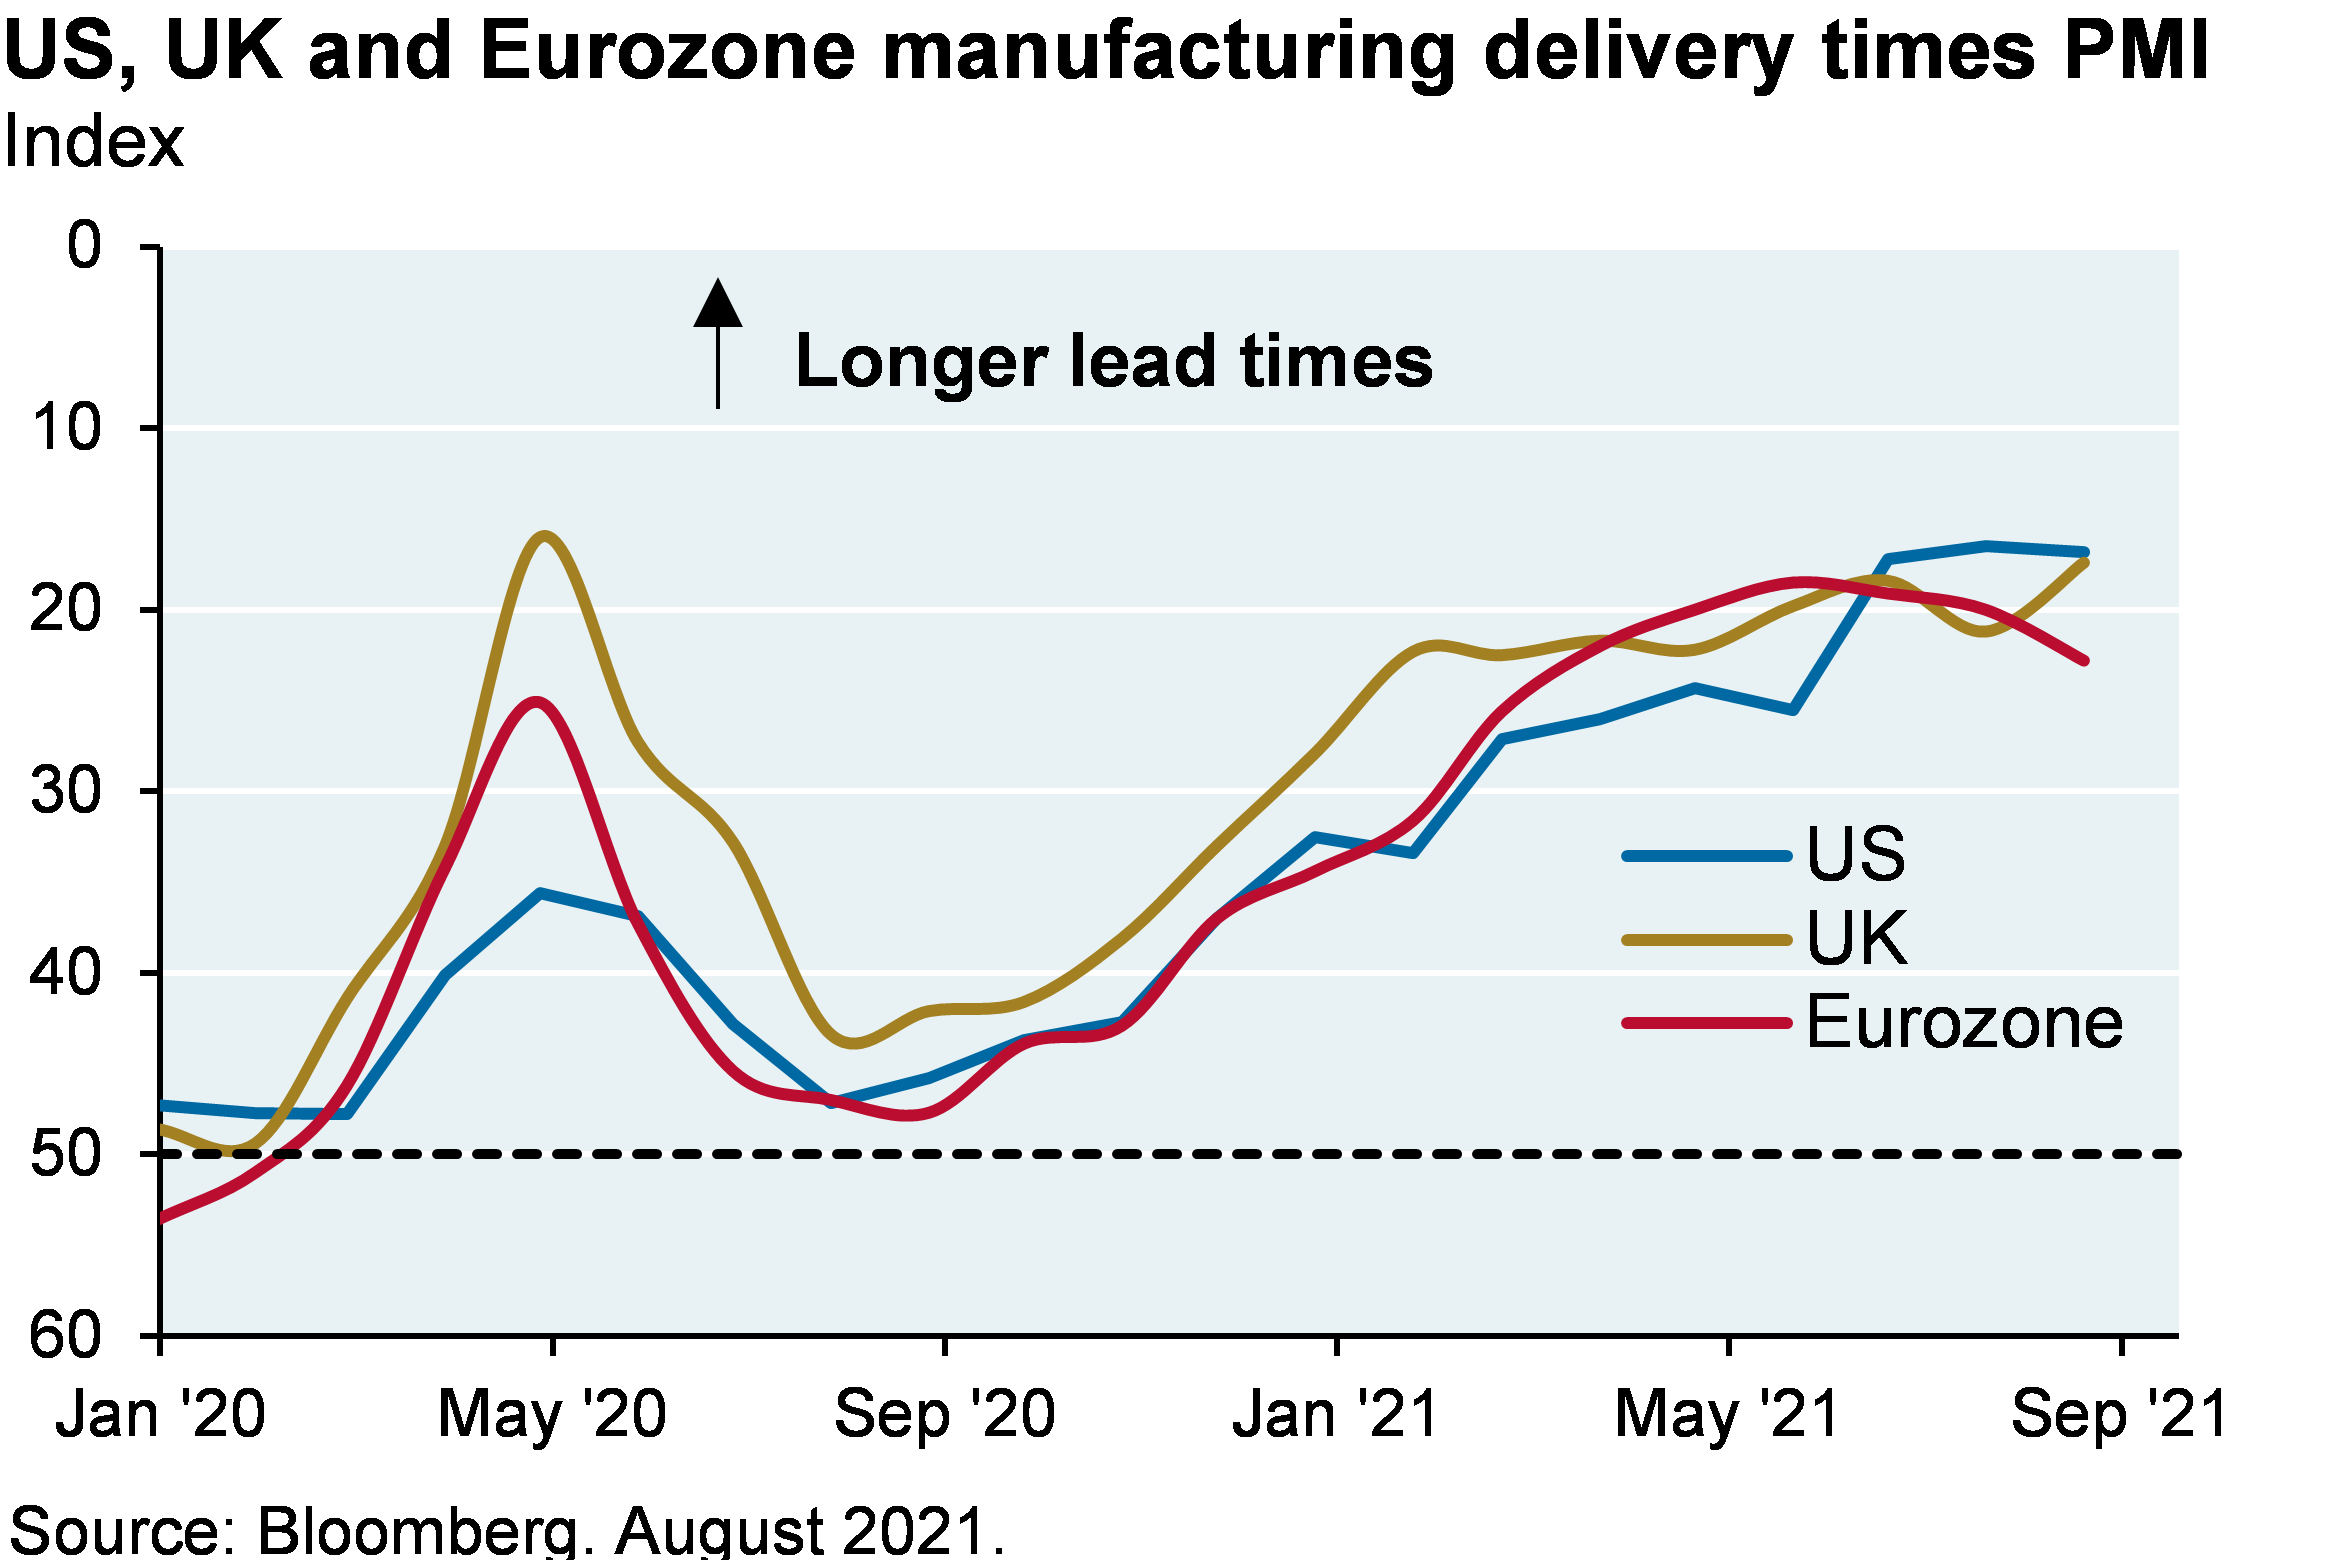 Line chart shows index levels for US, UK and Eurozone manufacturing delivery times. All three locations show a steep increase in delivery times from September 2020 to now, starting at levels around 40-45 and dropping to 15-25, where smaller values indicate longer lead times.